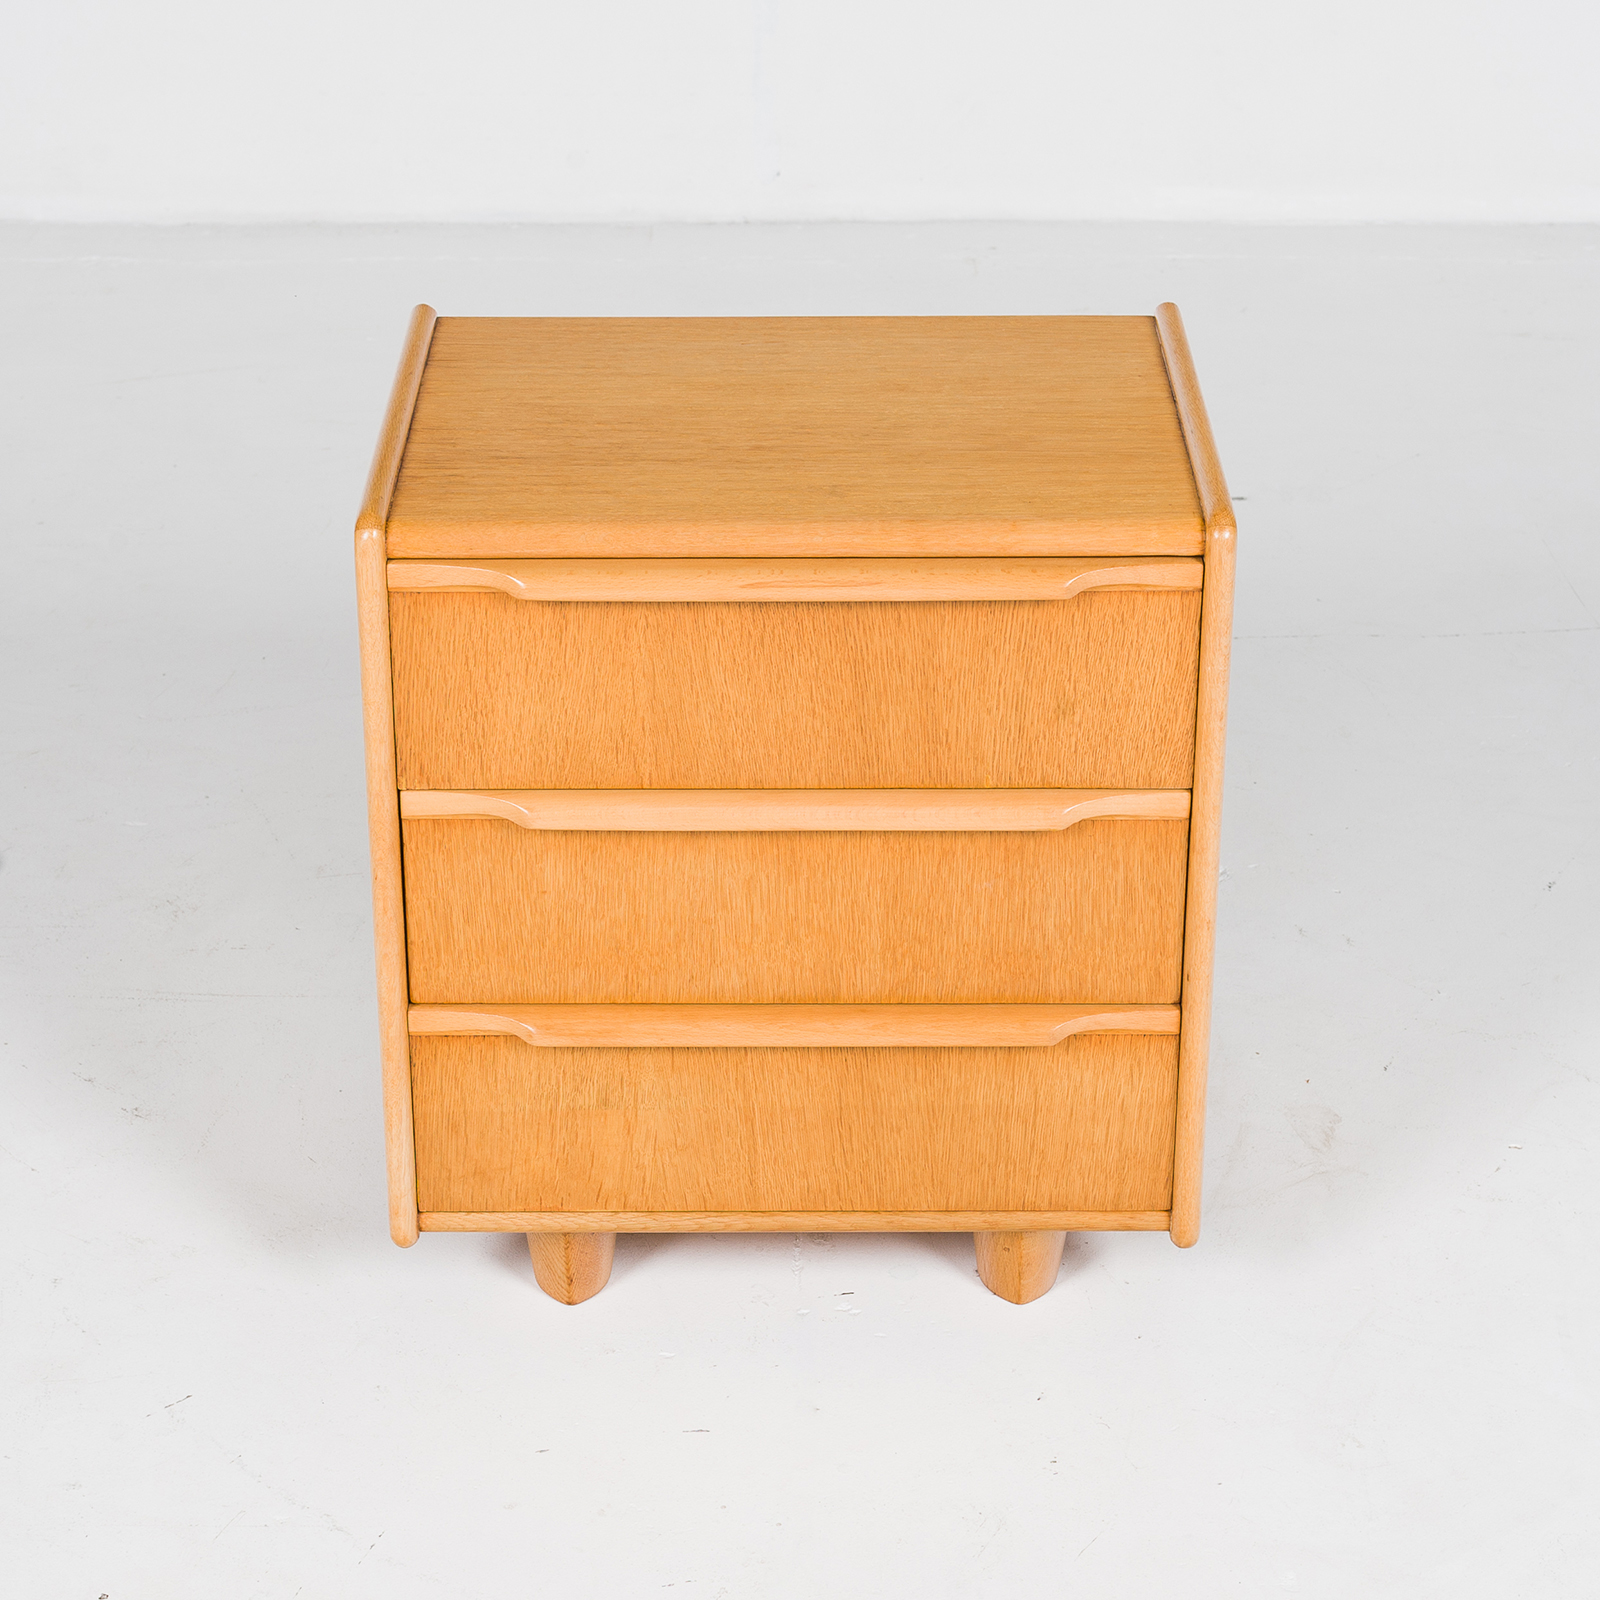 Oak Series Cabinet By Cees Braakman For Pastoe, 1950s, The Netherlands21